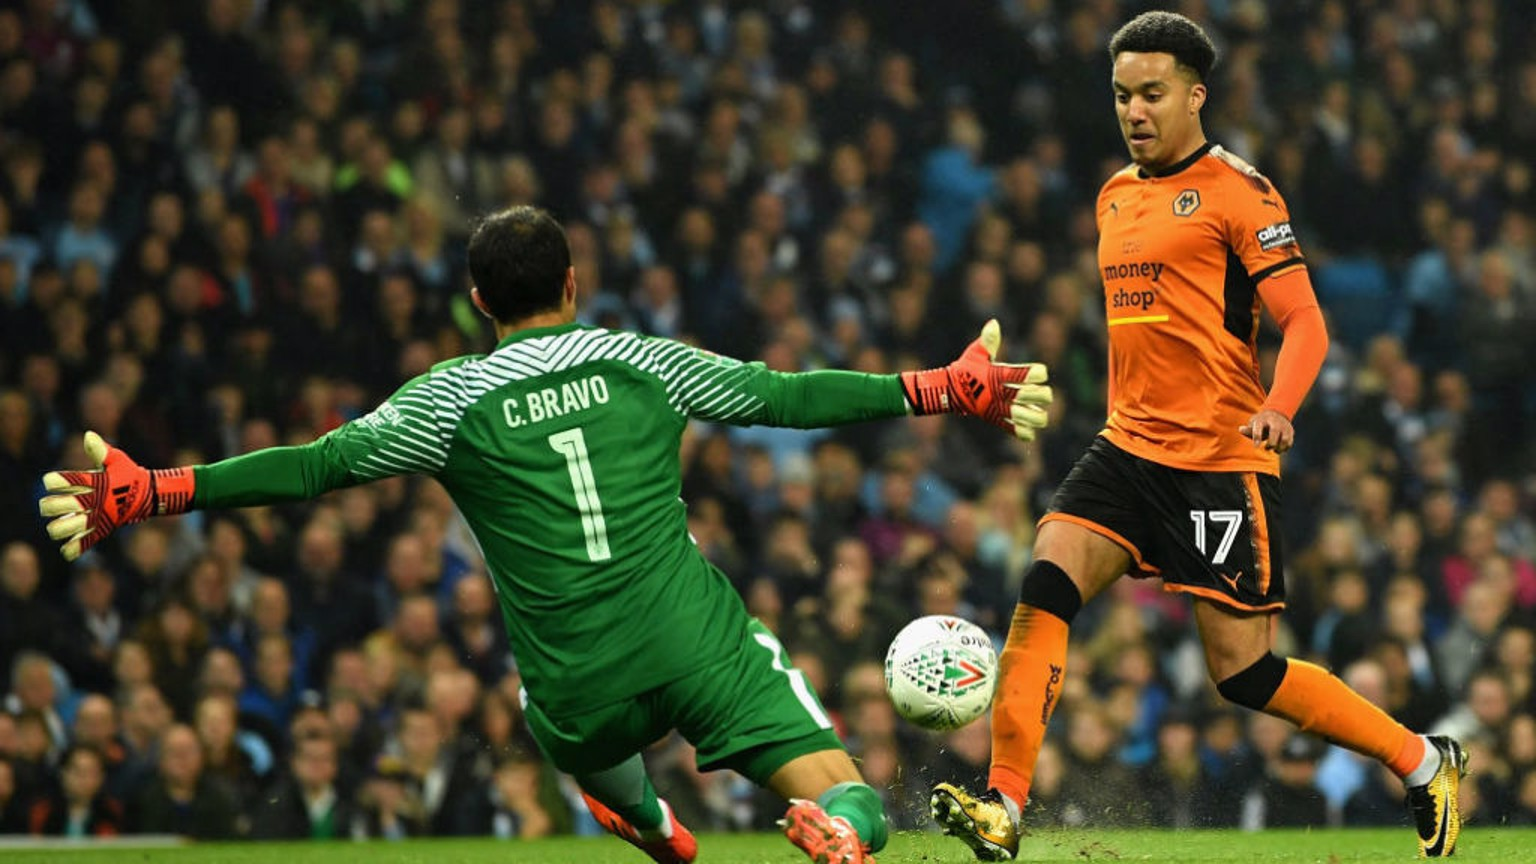 HAND IT TO CLAUDIO: City keeper Claudio Bravo denies Helder Costa